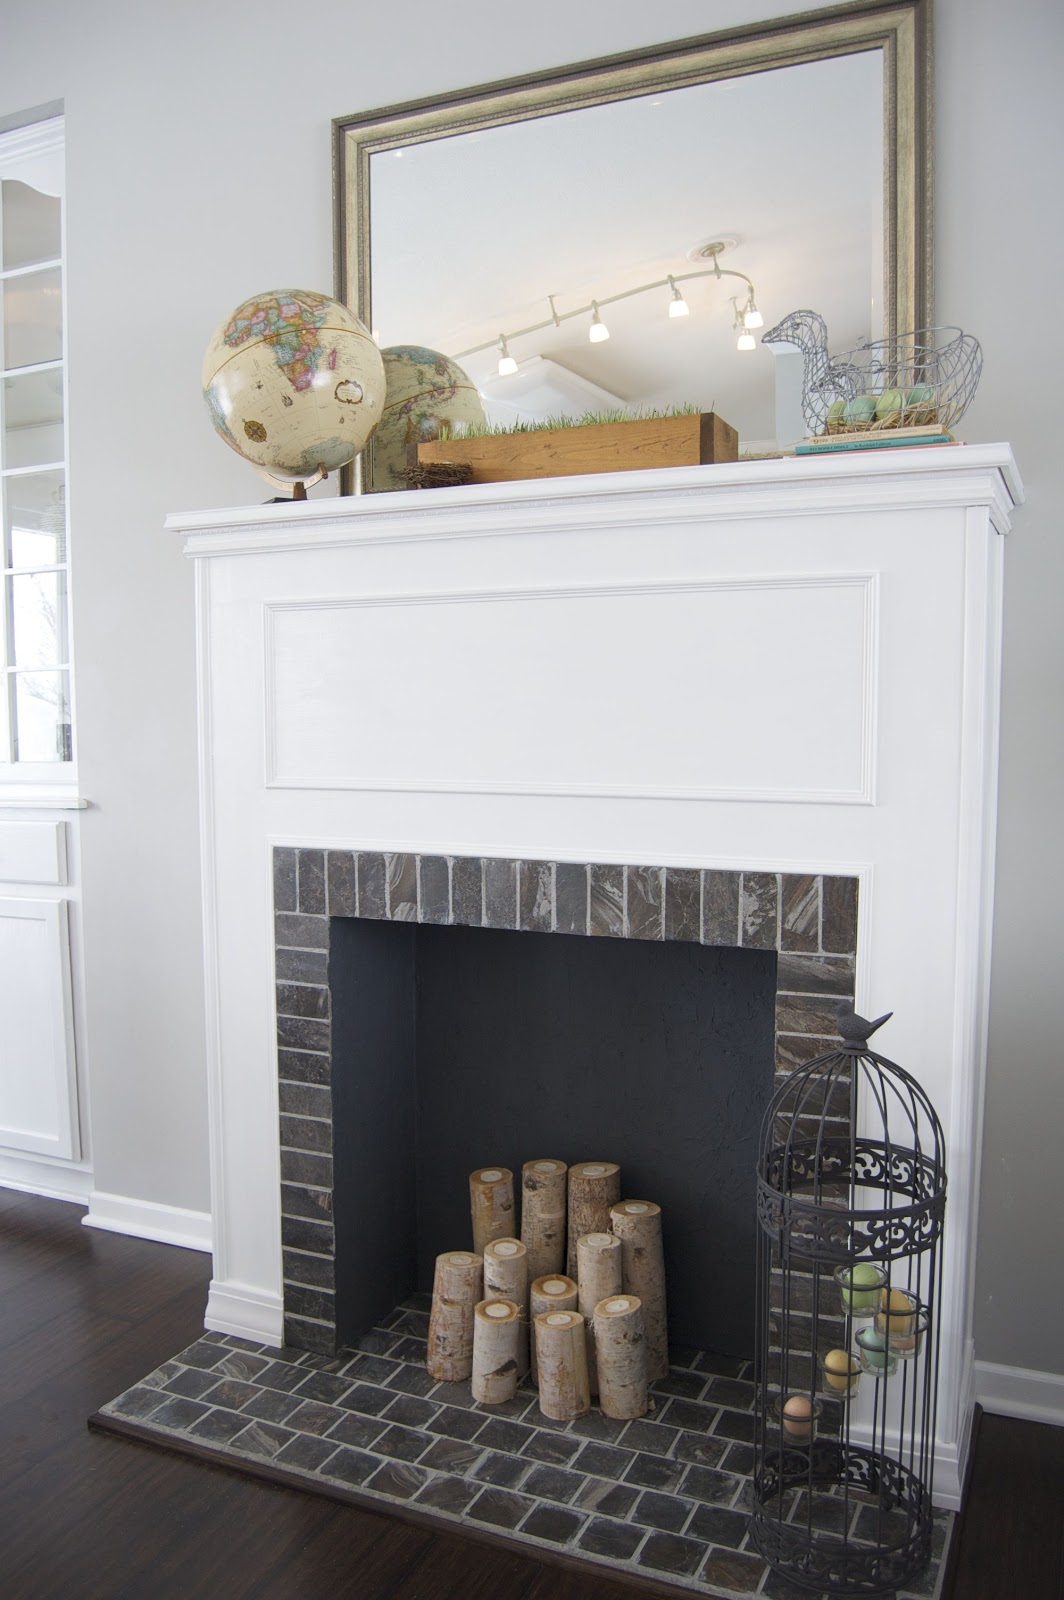 How to Build a Faux Fireplace Surround